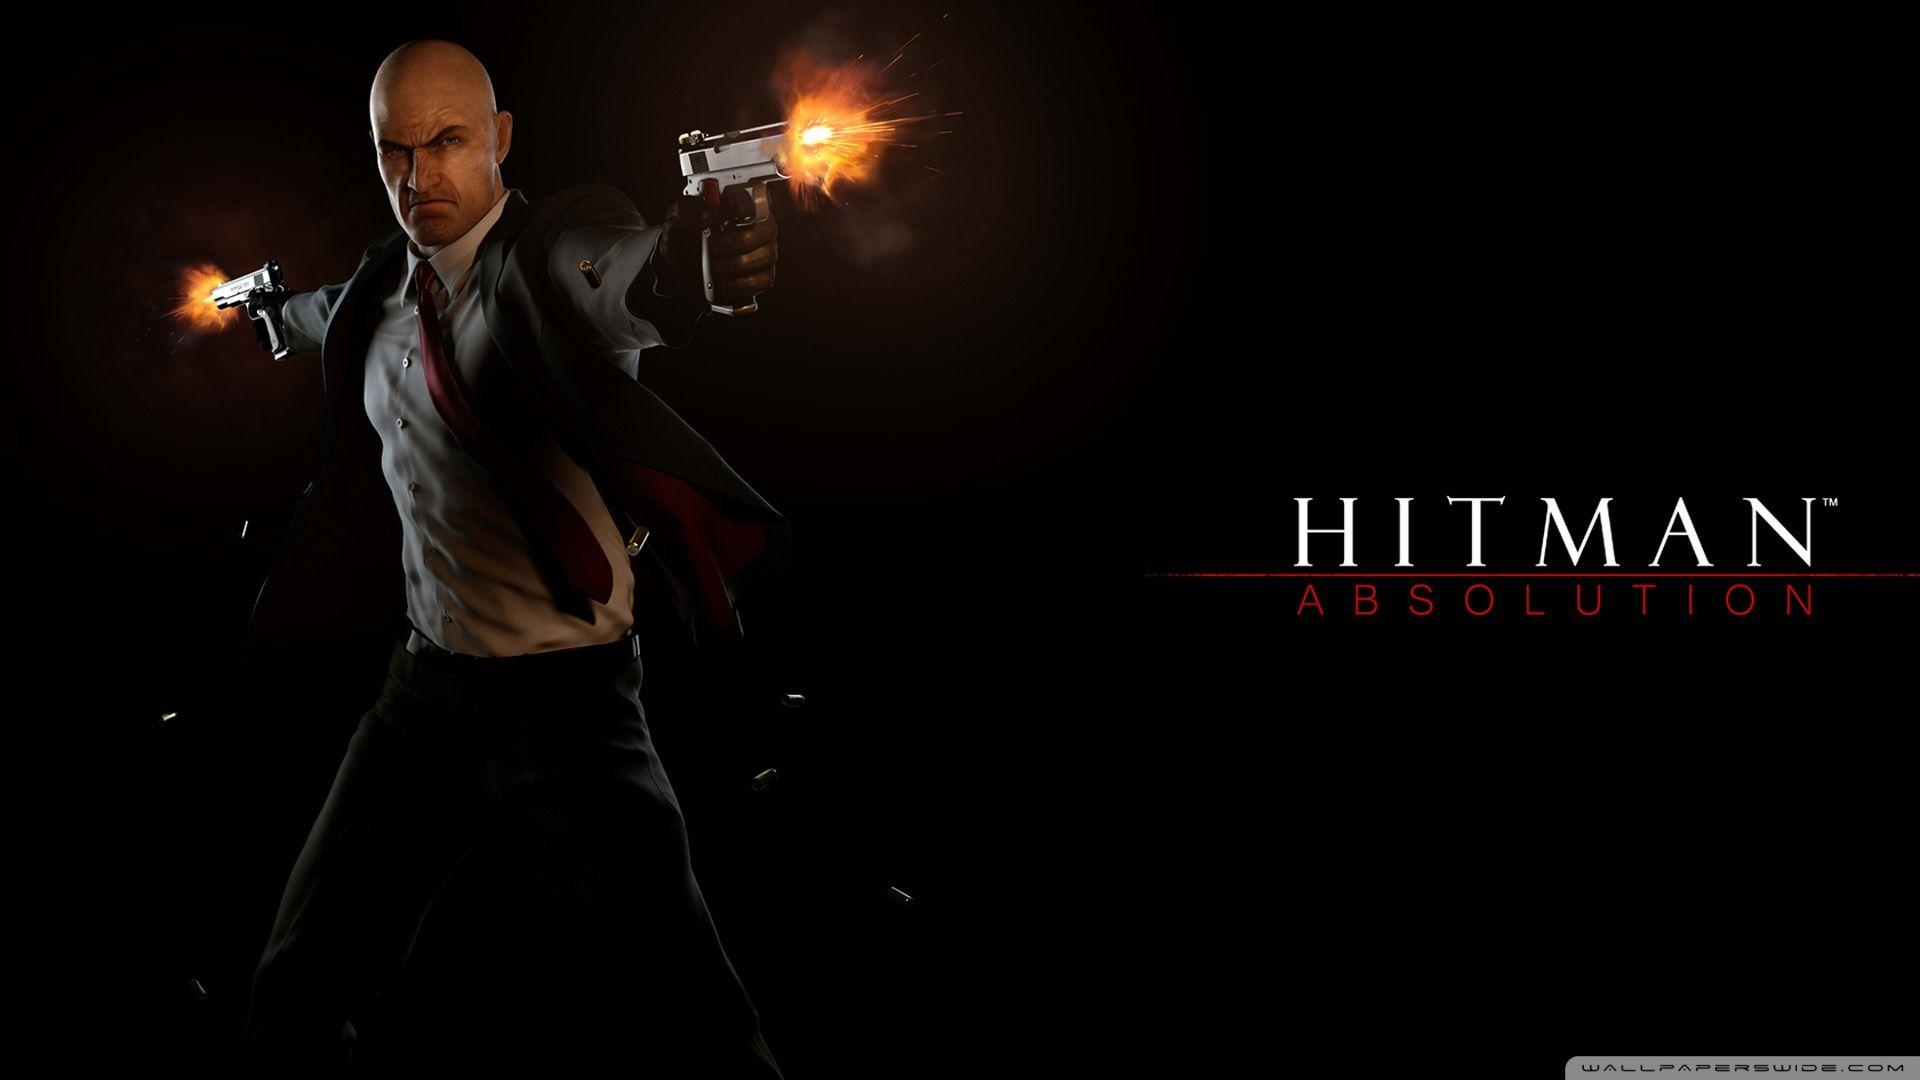 Hitman Absolution Wallpapers 1920x1080 Wallpaper Cave